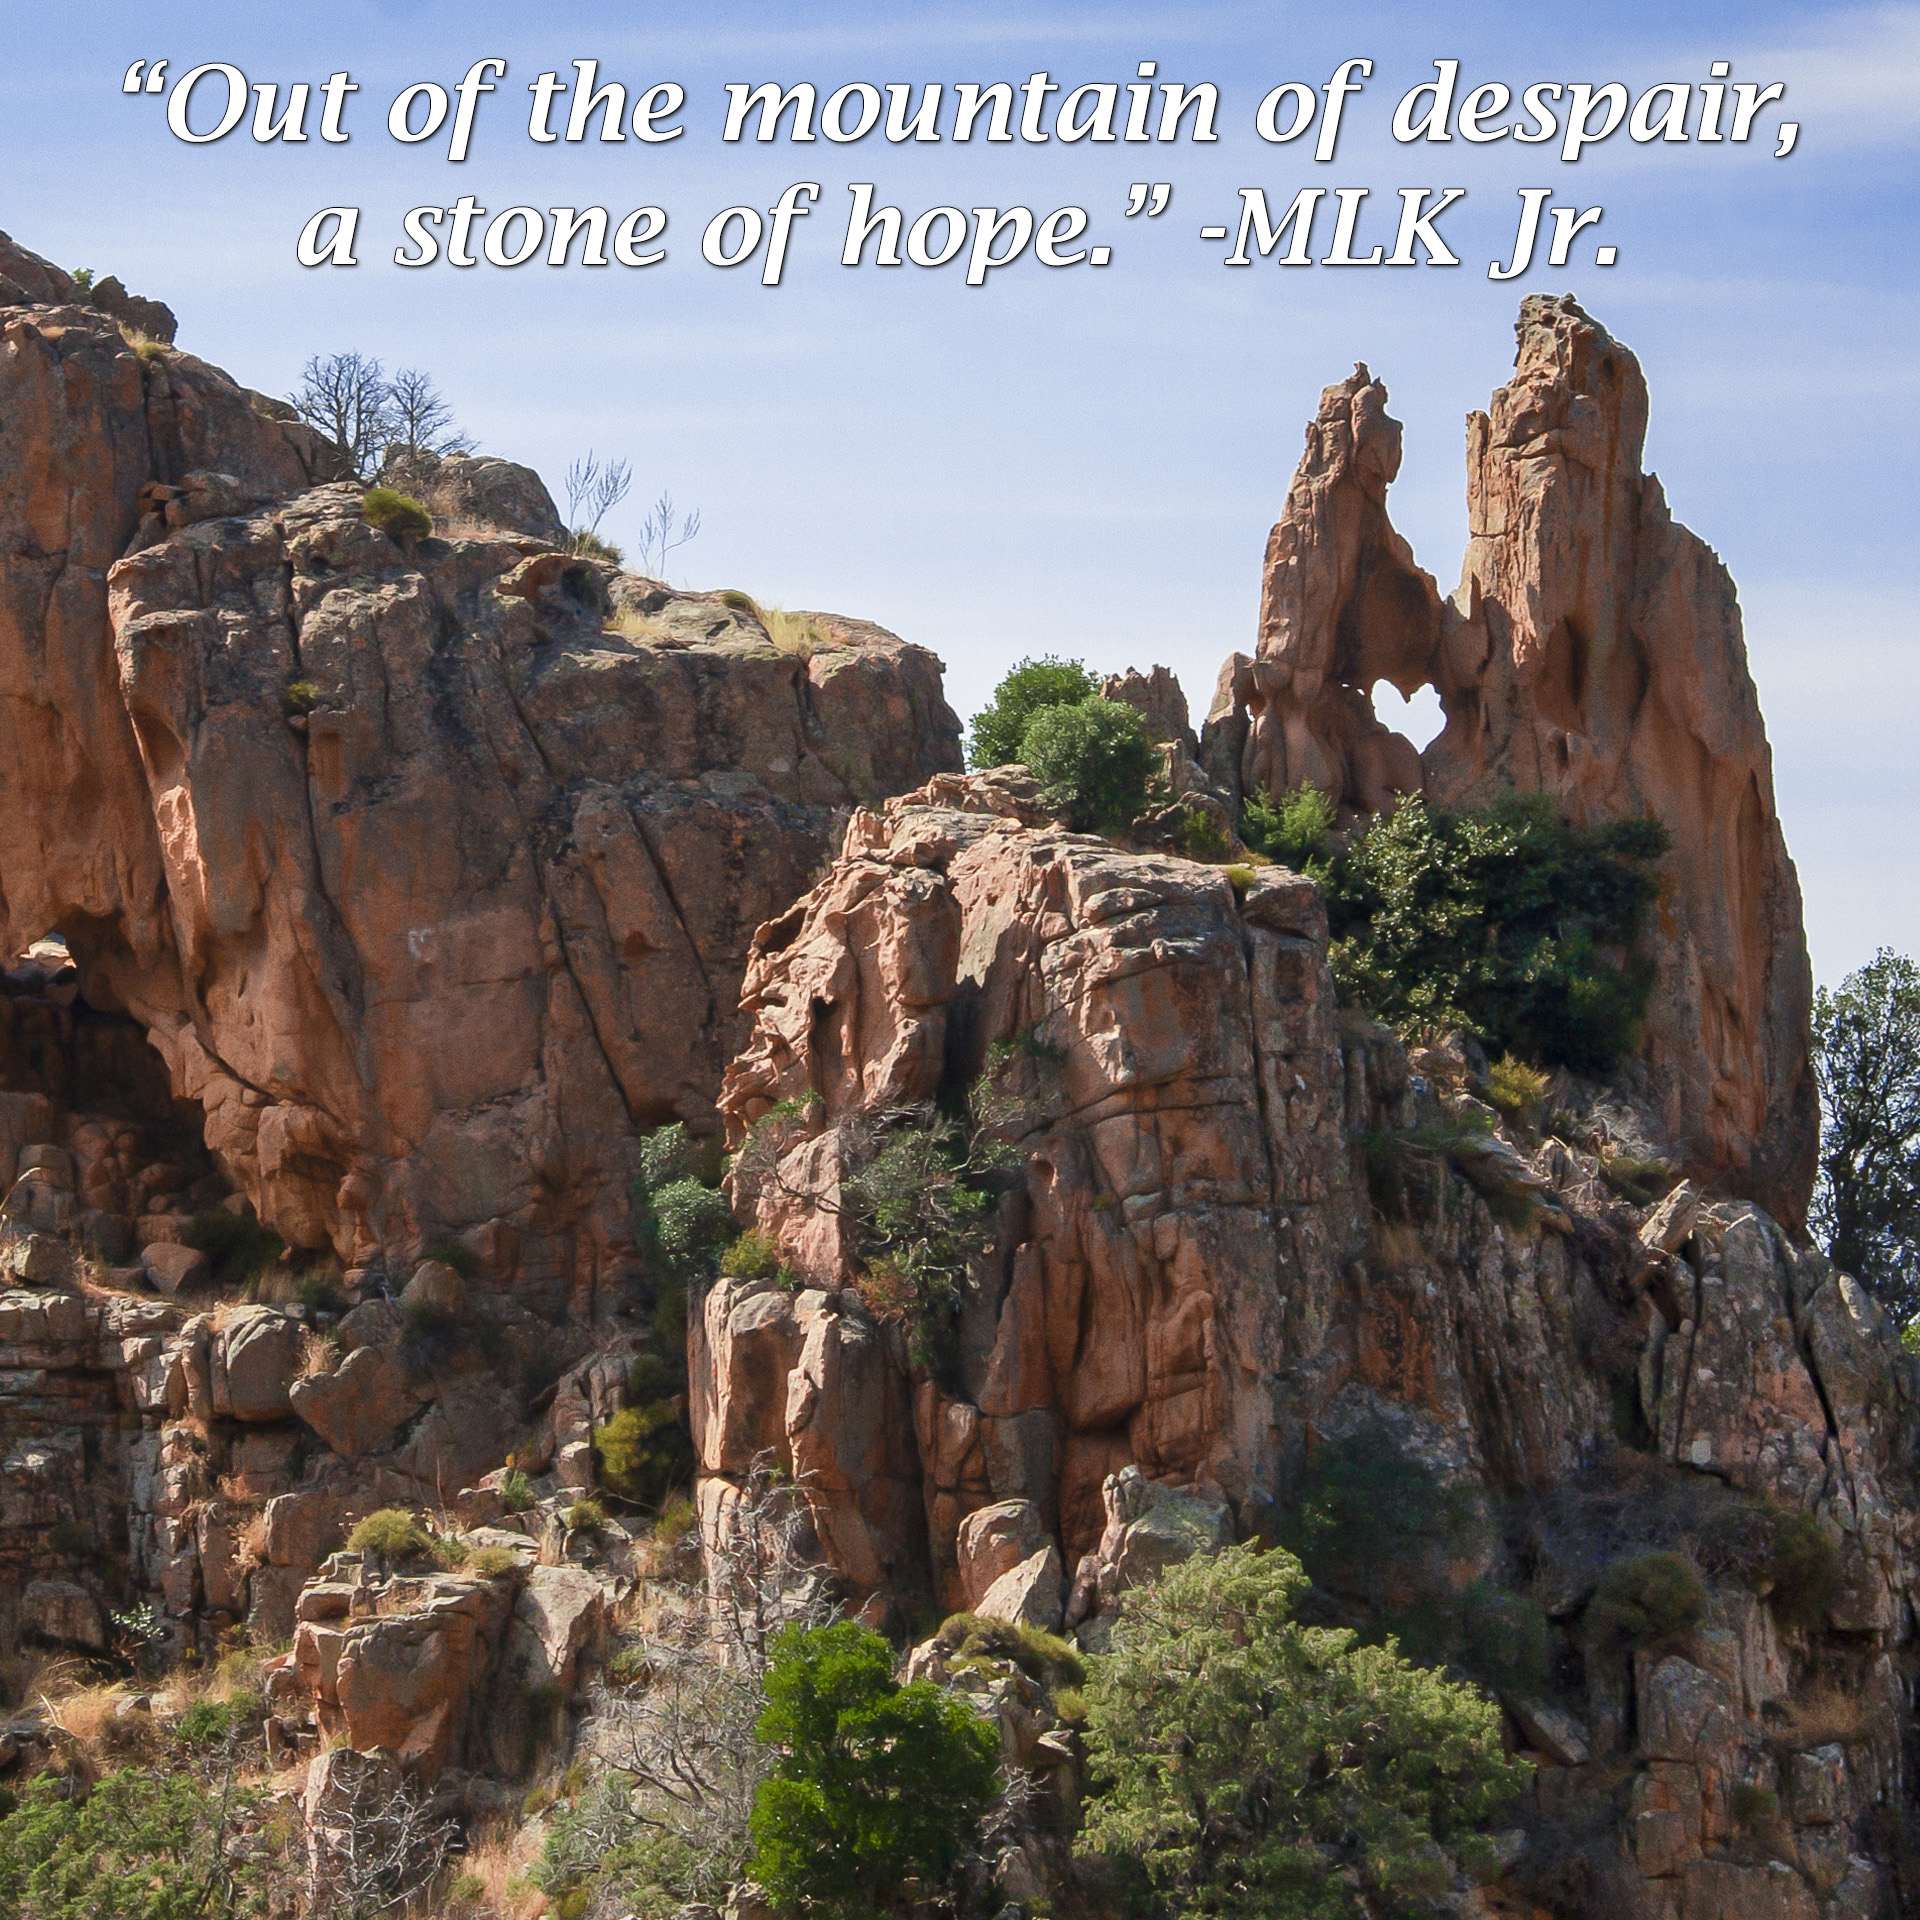 """Out of the mountain of despair, a stone of hope."" -MLK Jr."